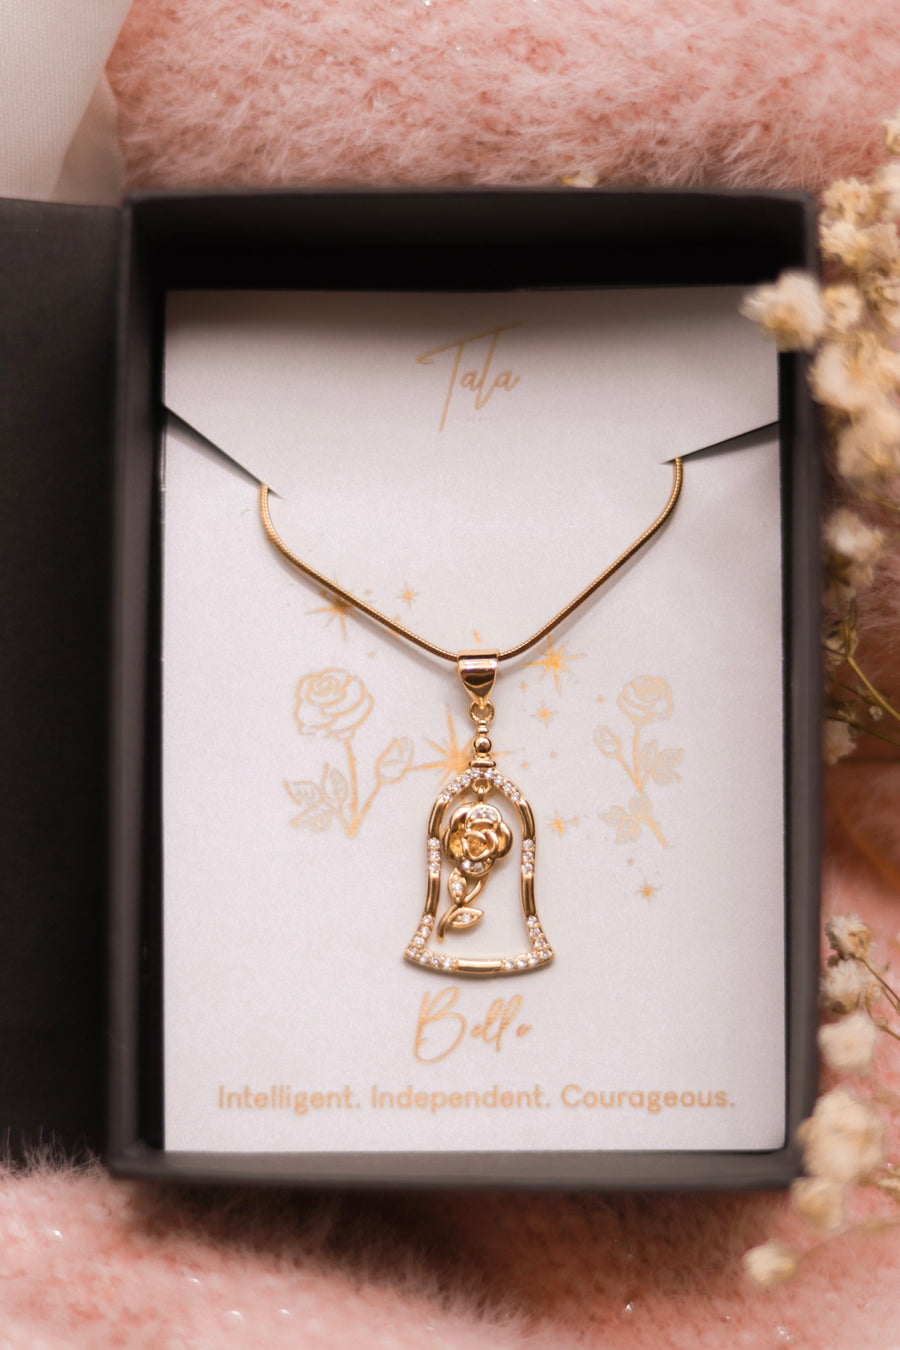 Belle's Glass Rose Necklace